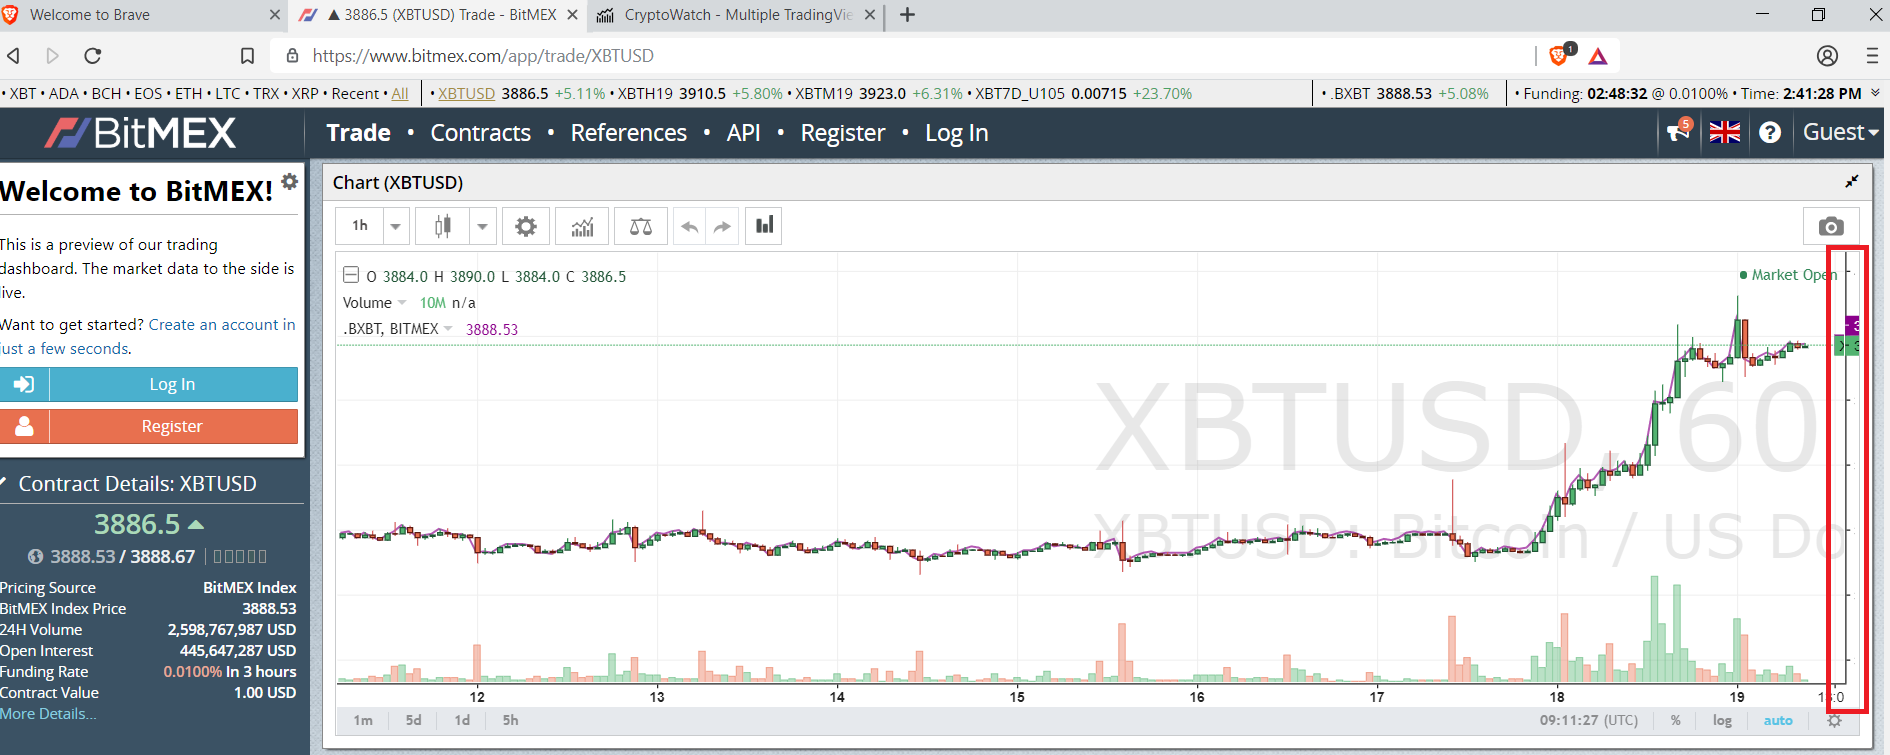 Prices cuts off the screen in Tradingview com graphs · Issue #3412